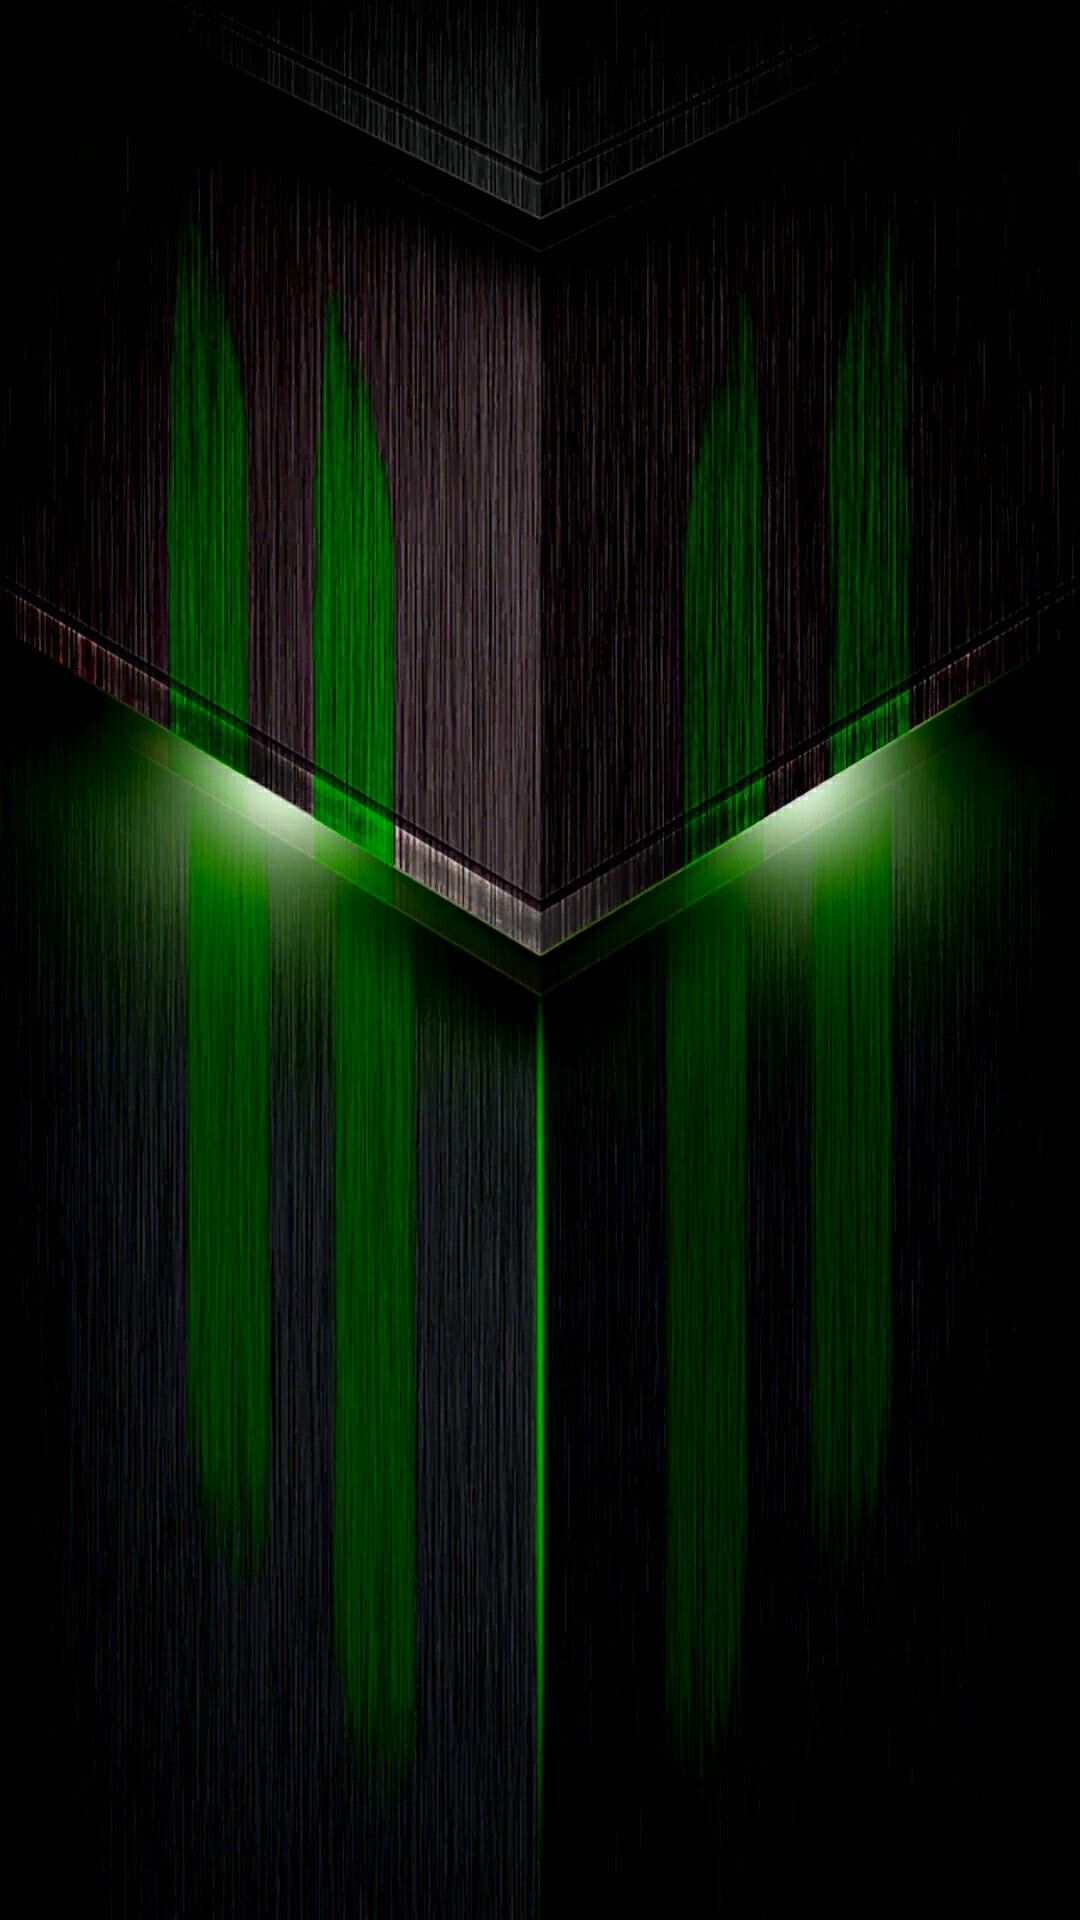 List of Latest Green Phone Wallpaper HD Today by Uploaded by user